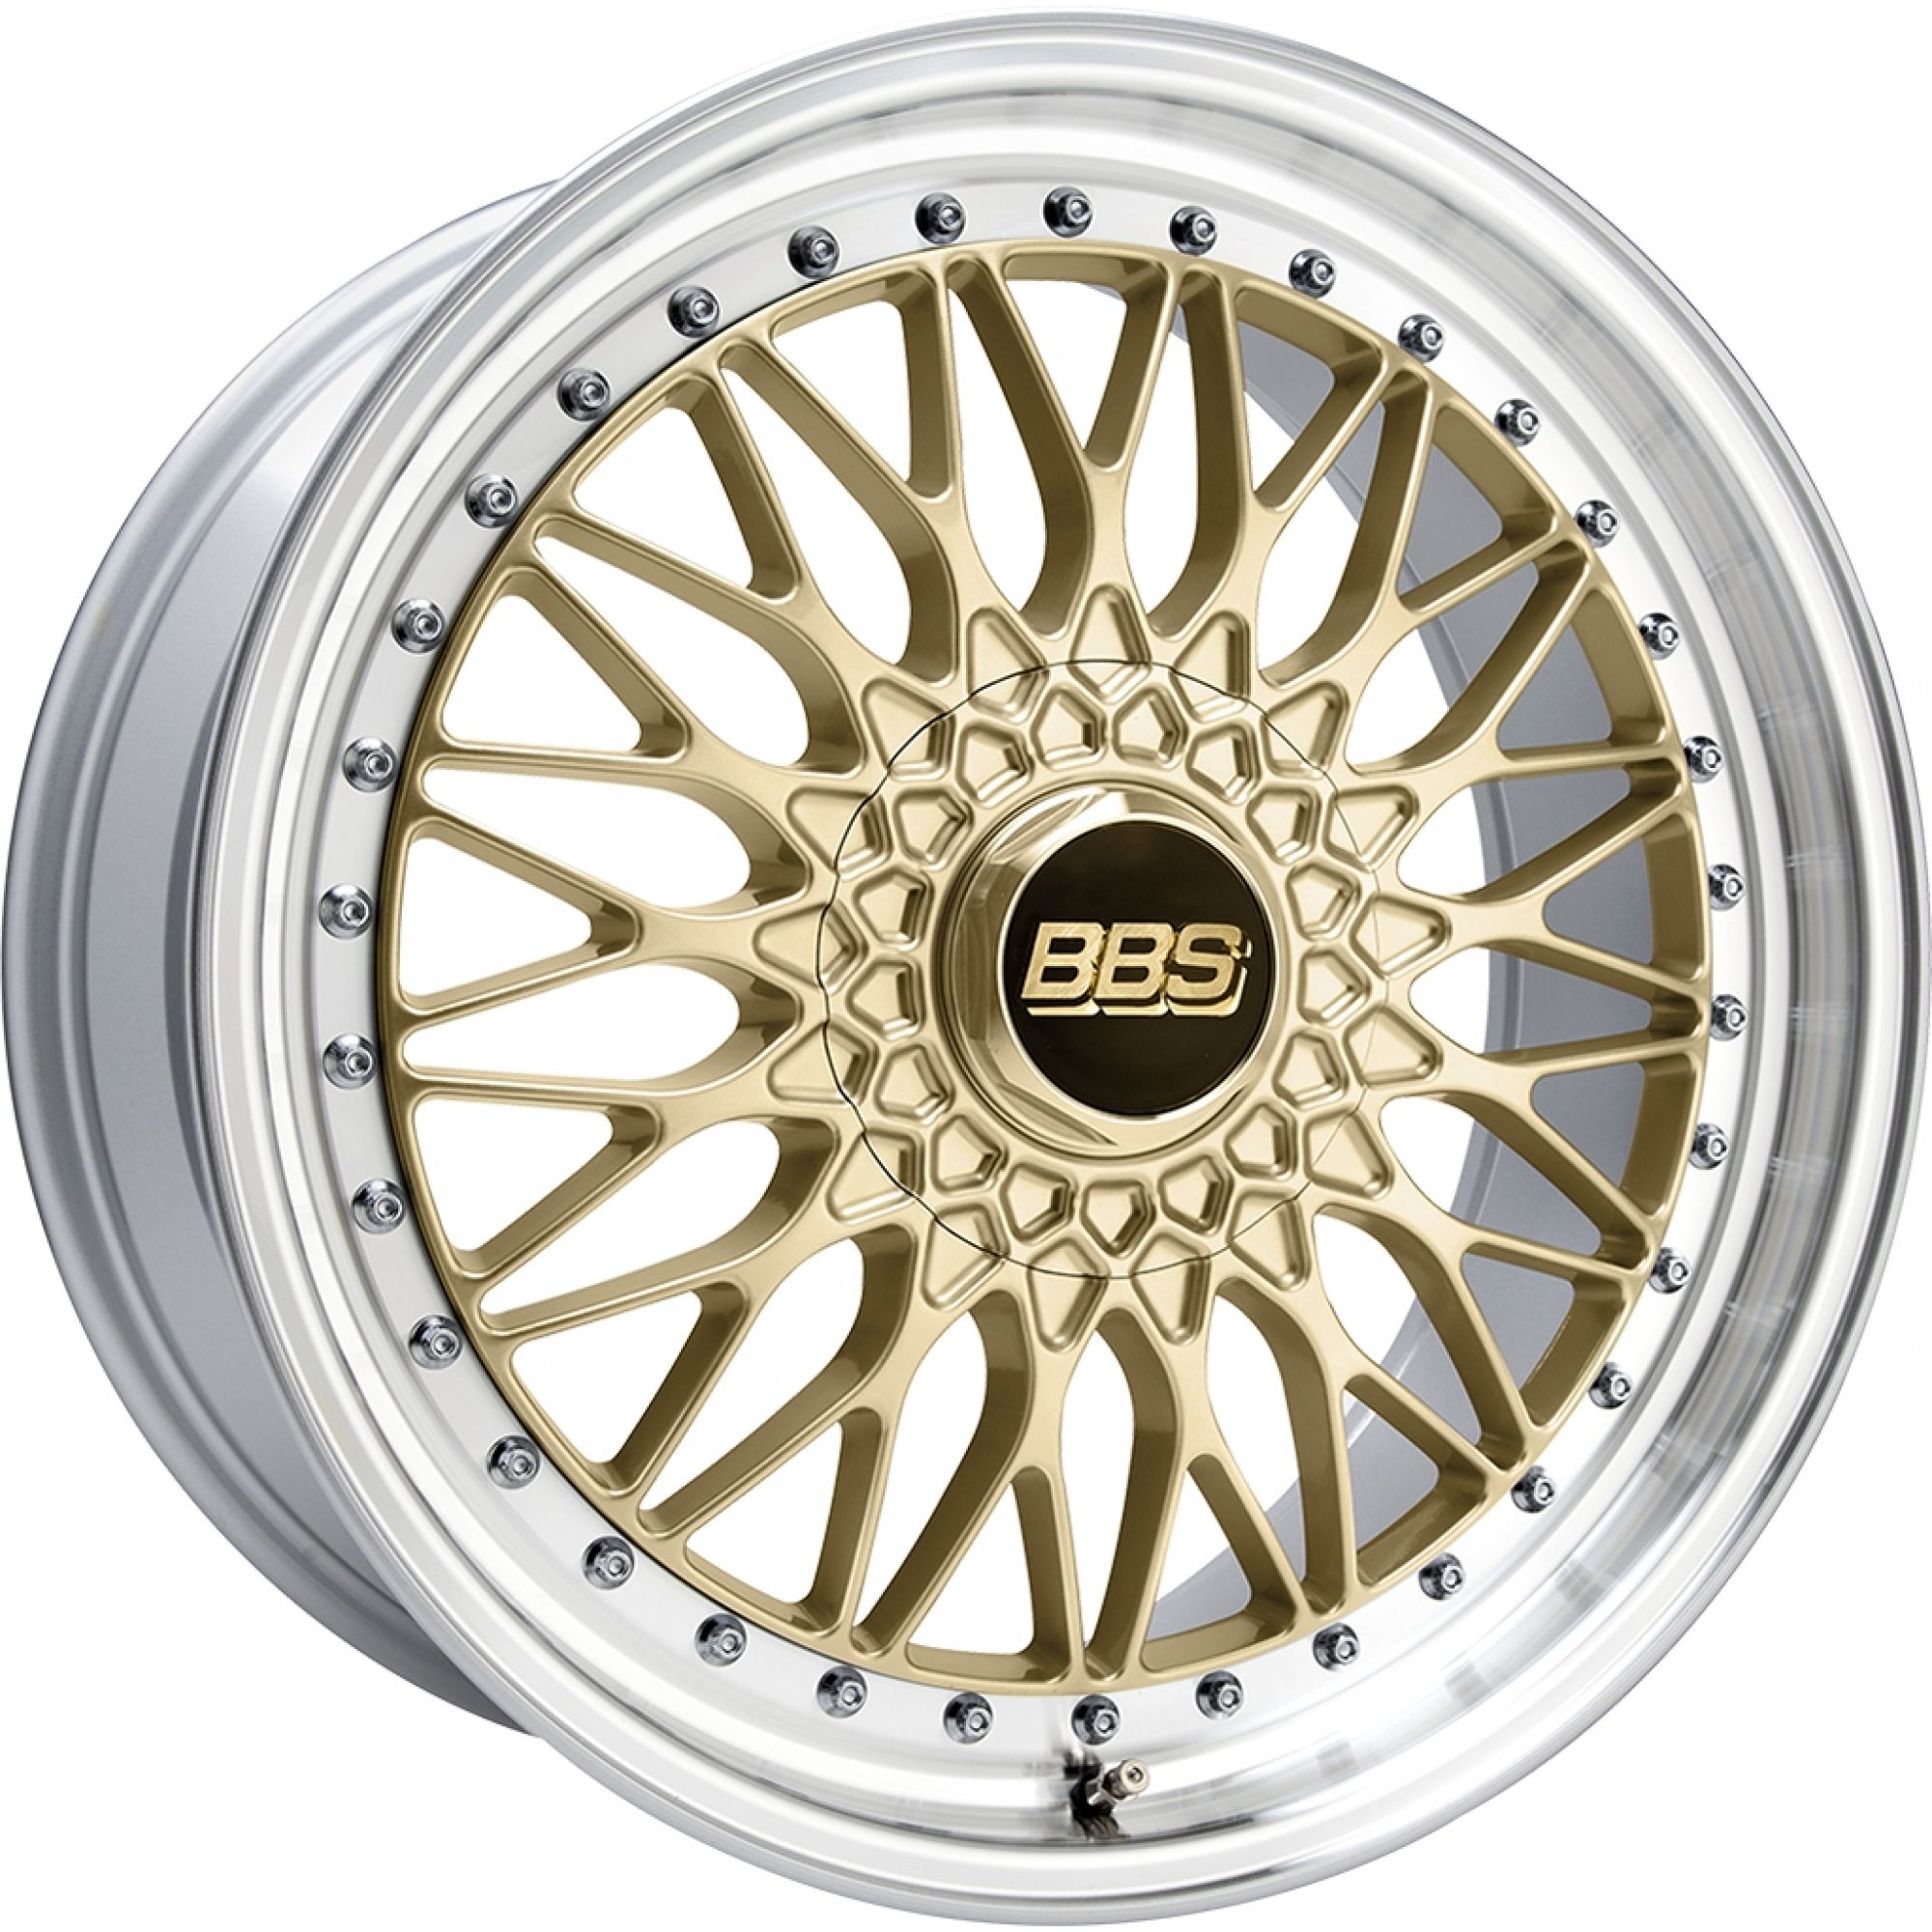 Bbs Super Rs Felgen Gold Felge Diagedr In 20 Zoll